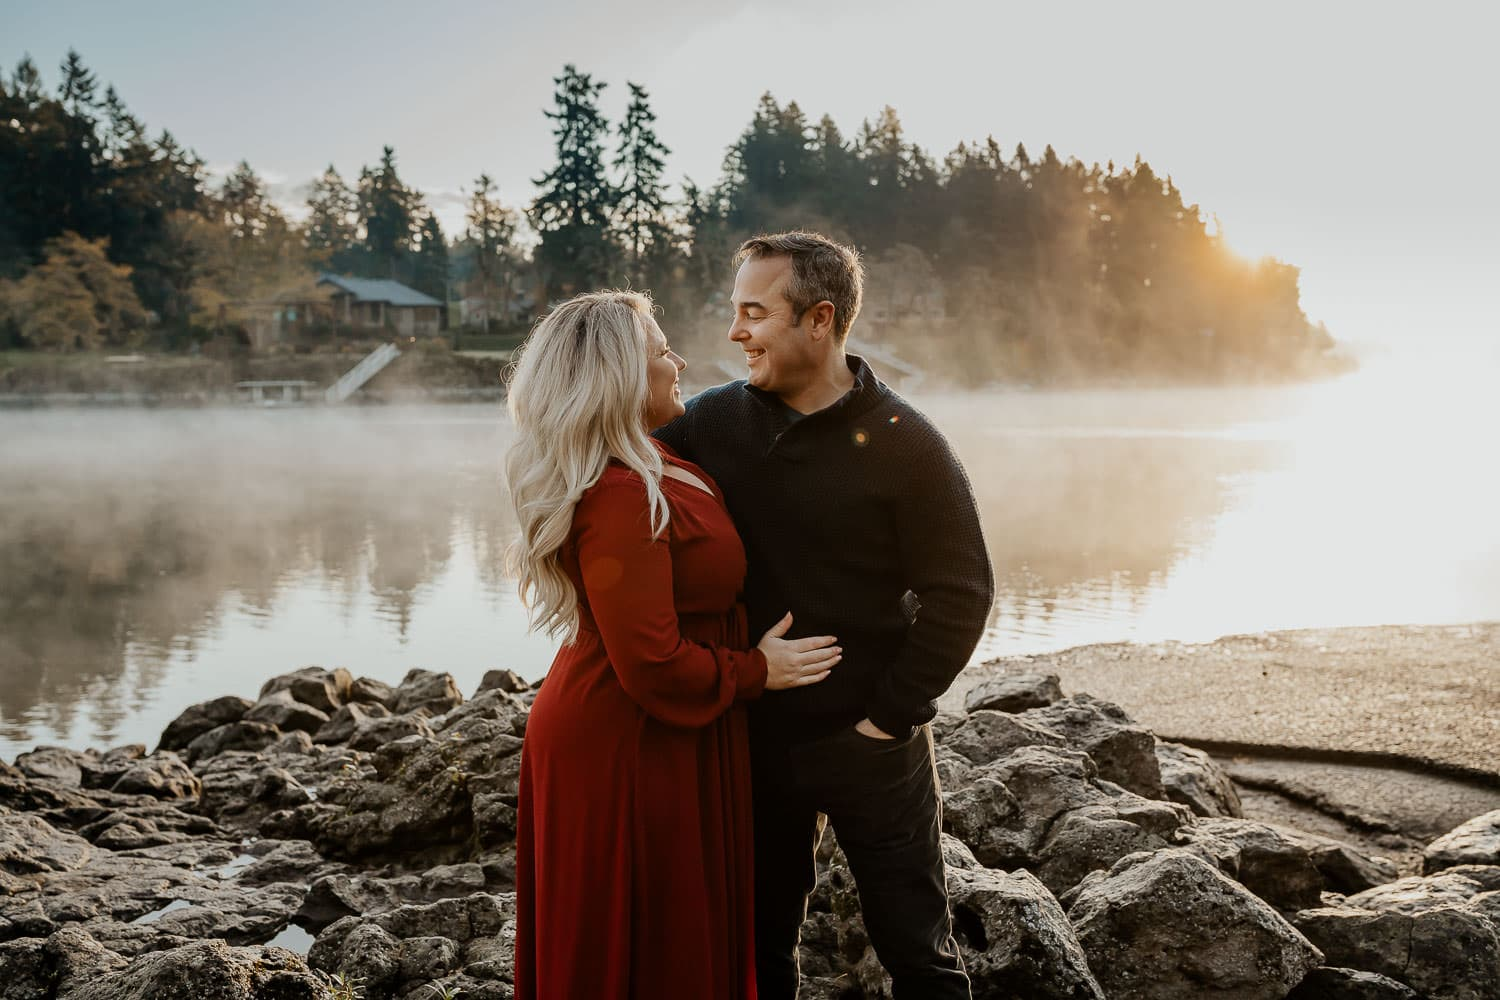 Couple standing on rocks at a river - best locations for couples photos